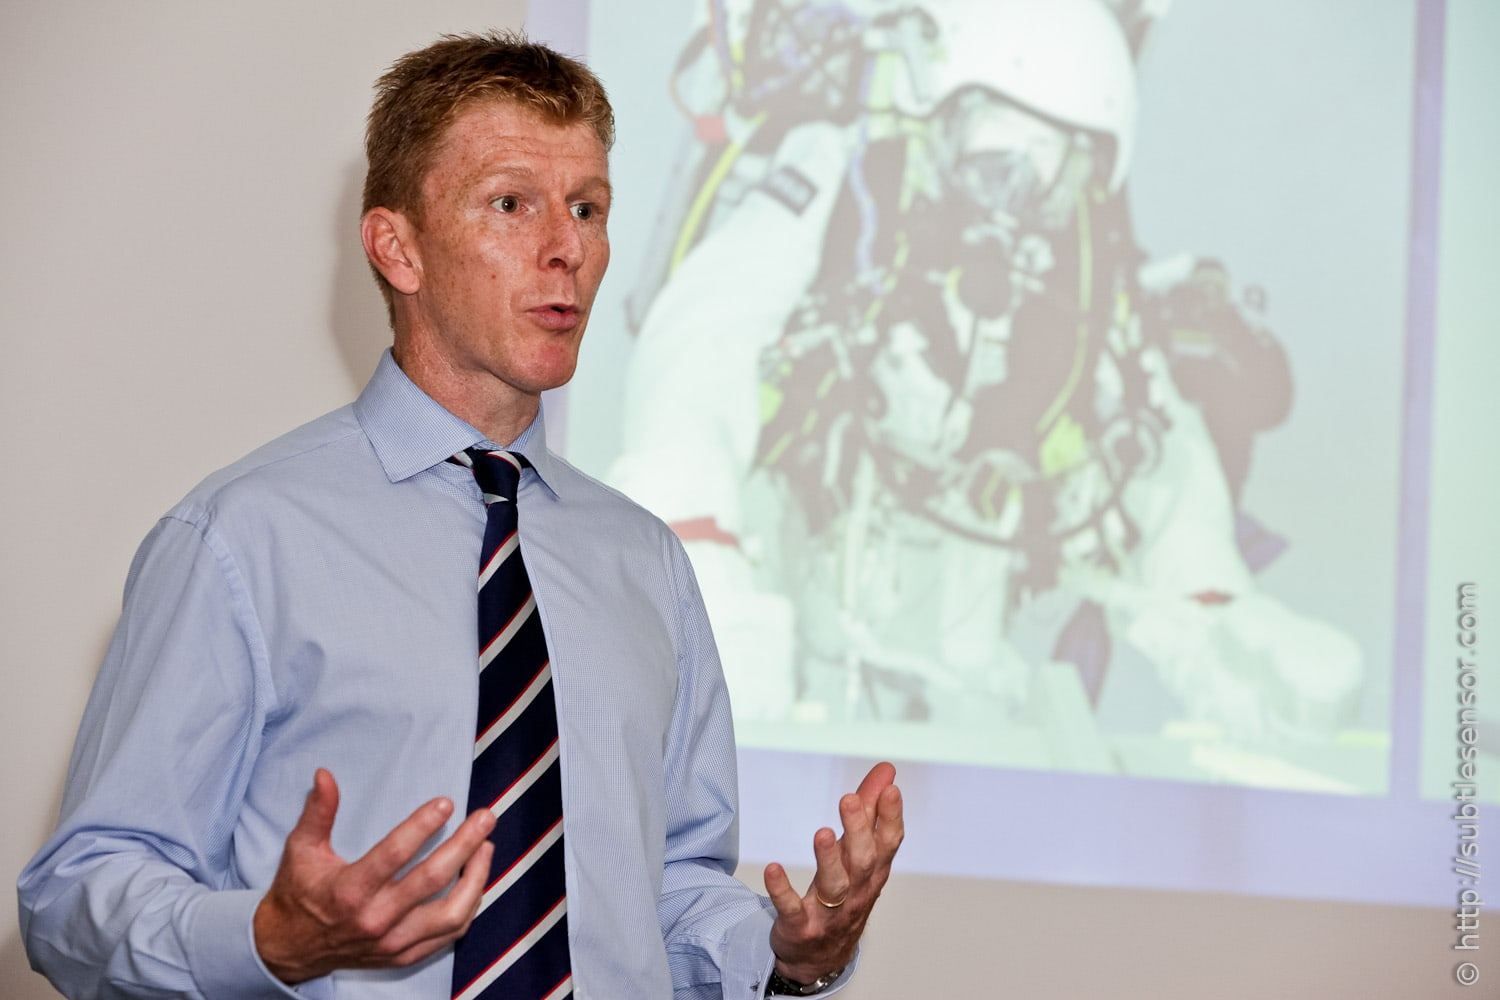 British Astronaught Tim Peake giving a speech at UK Space Conference